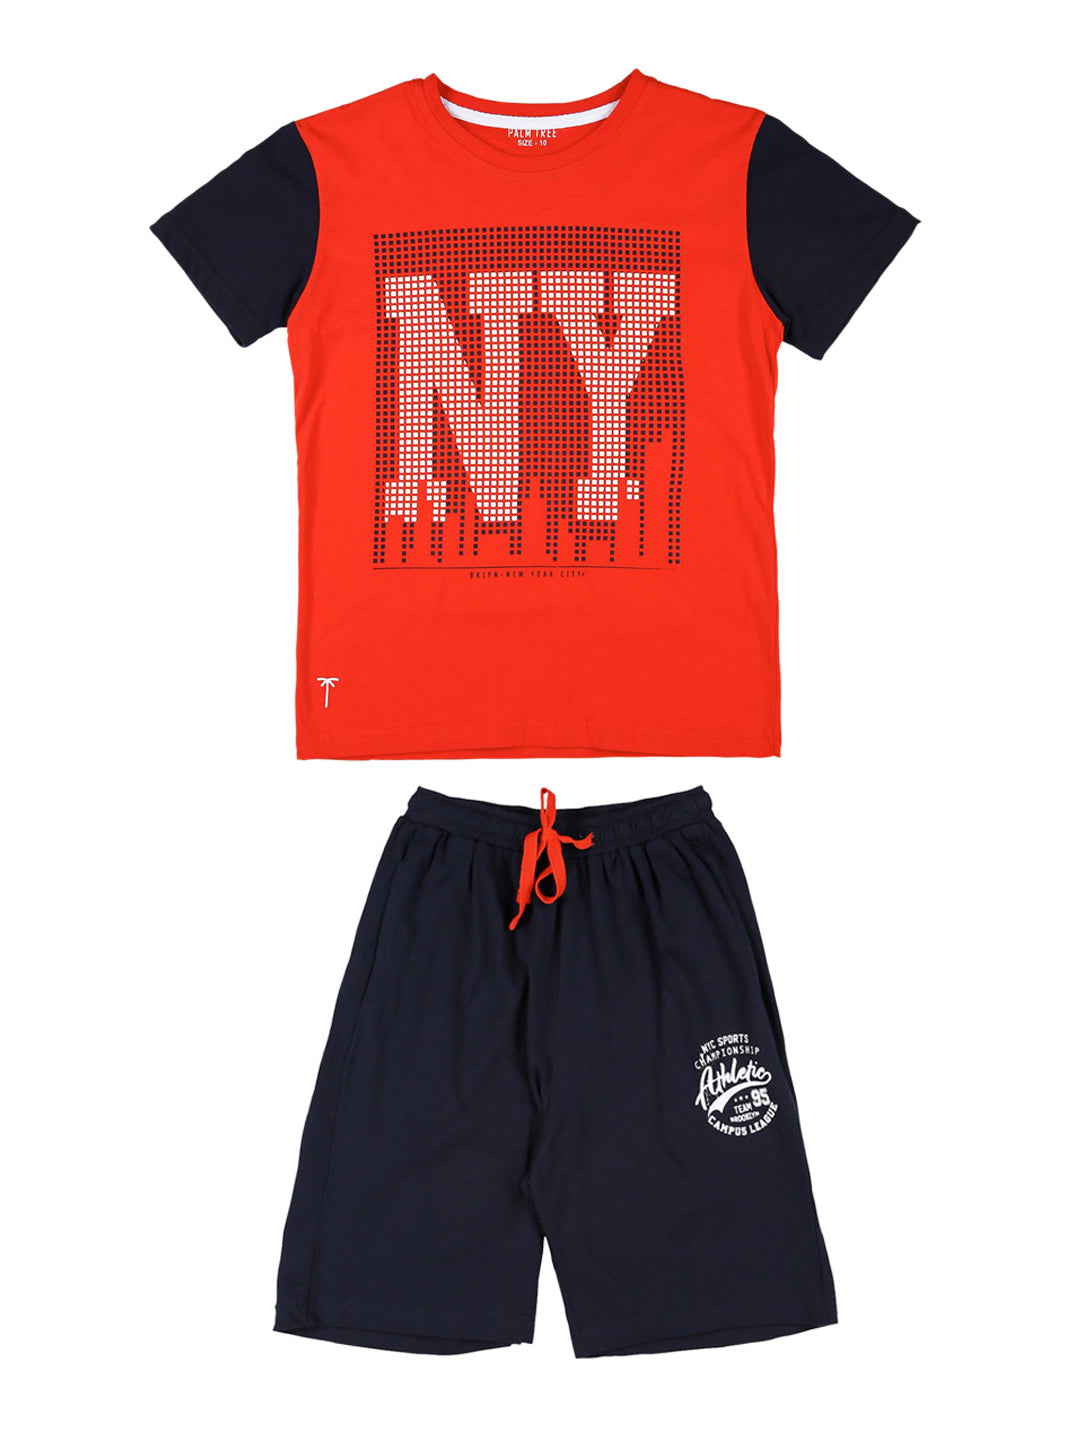 Fiery Red New York T-shirt and Shorts Set